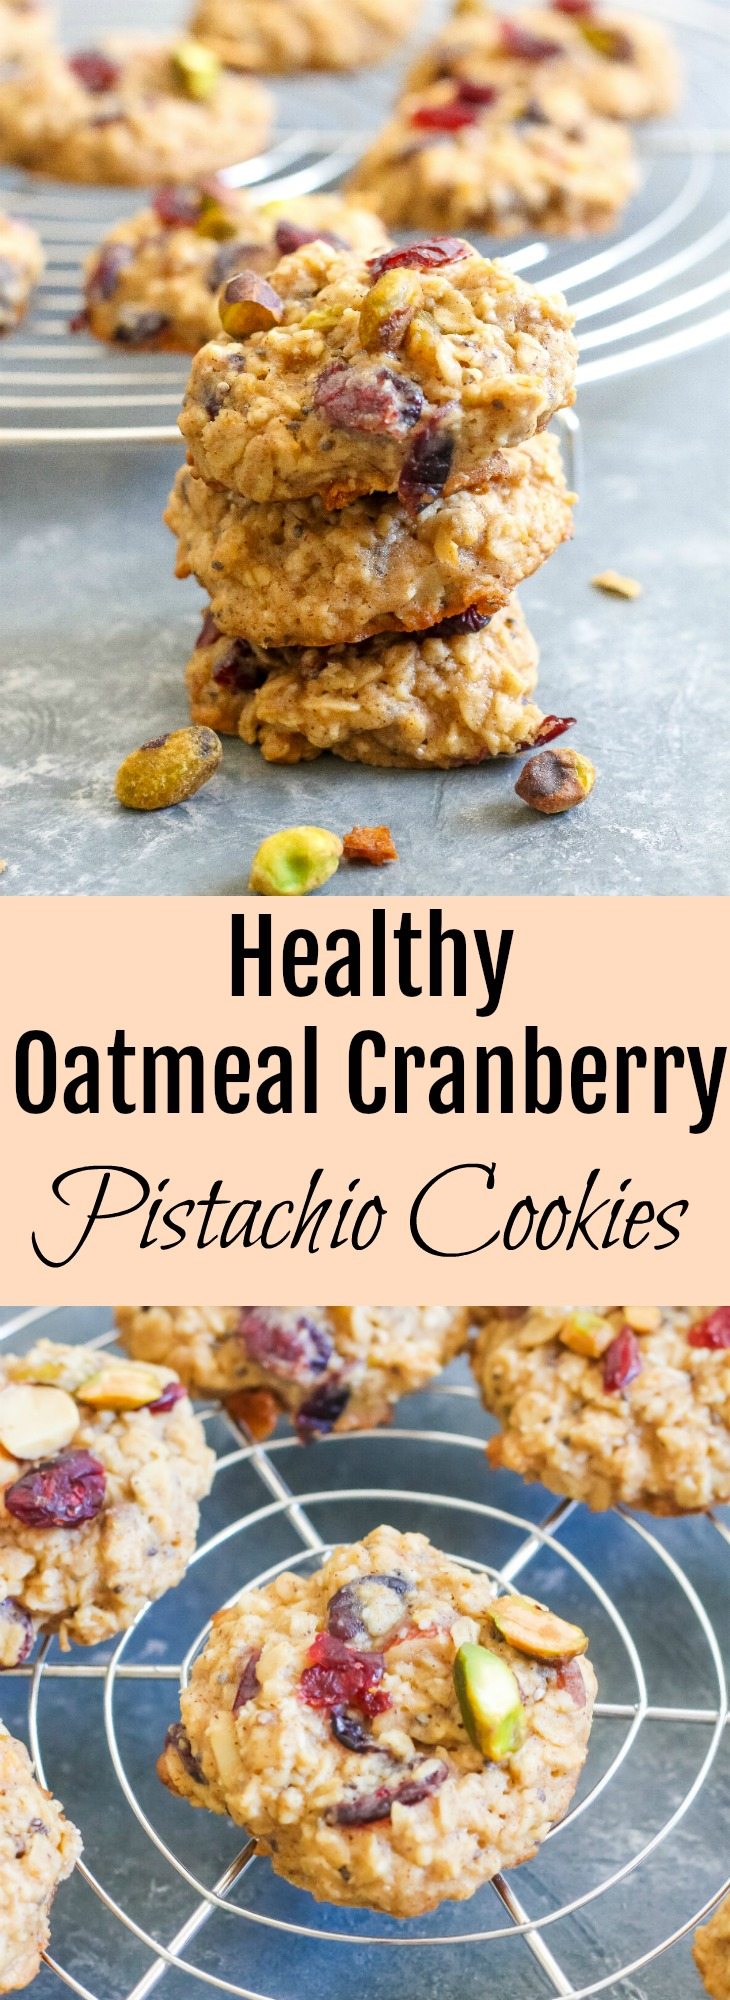 Healthy Oatmeal Cranberry Pistachio Cookies